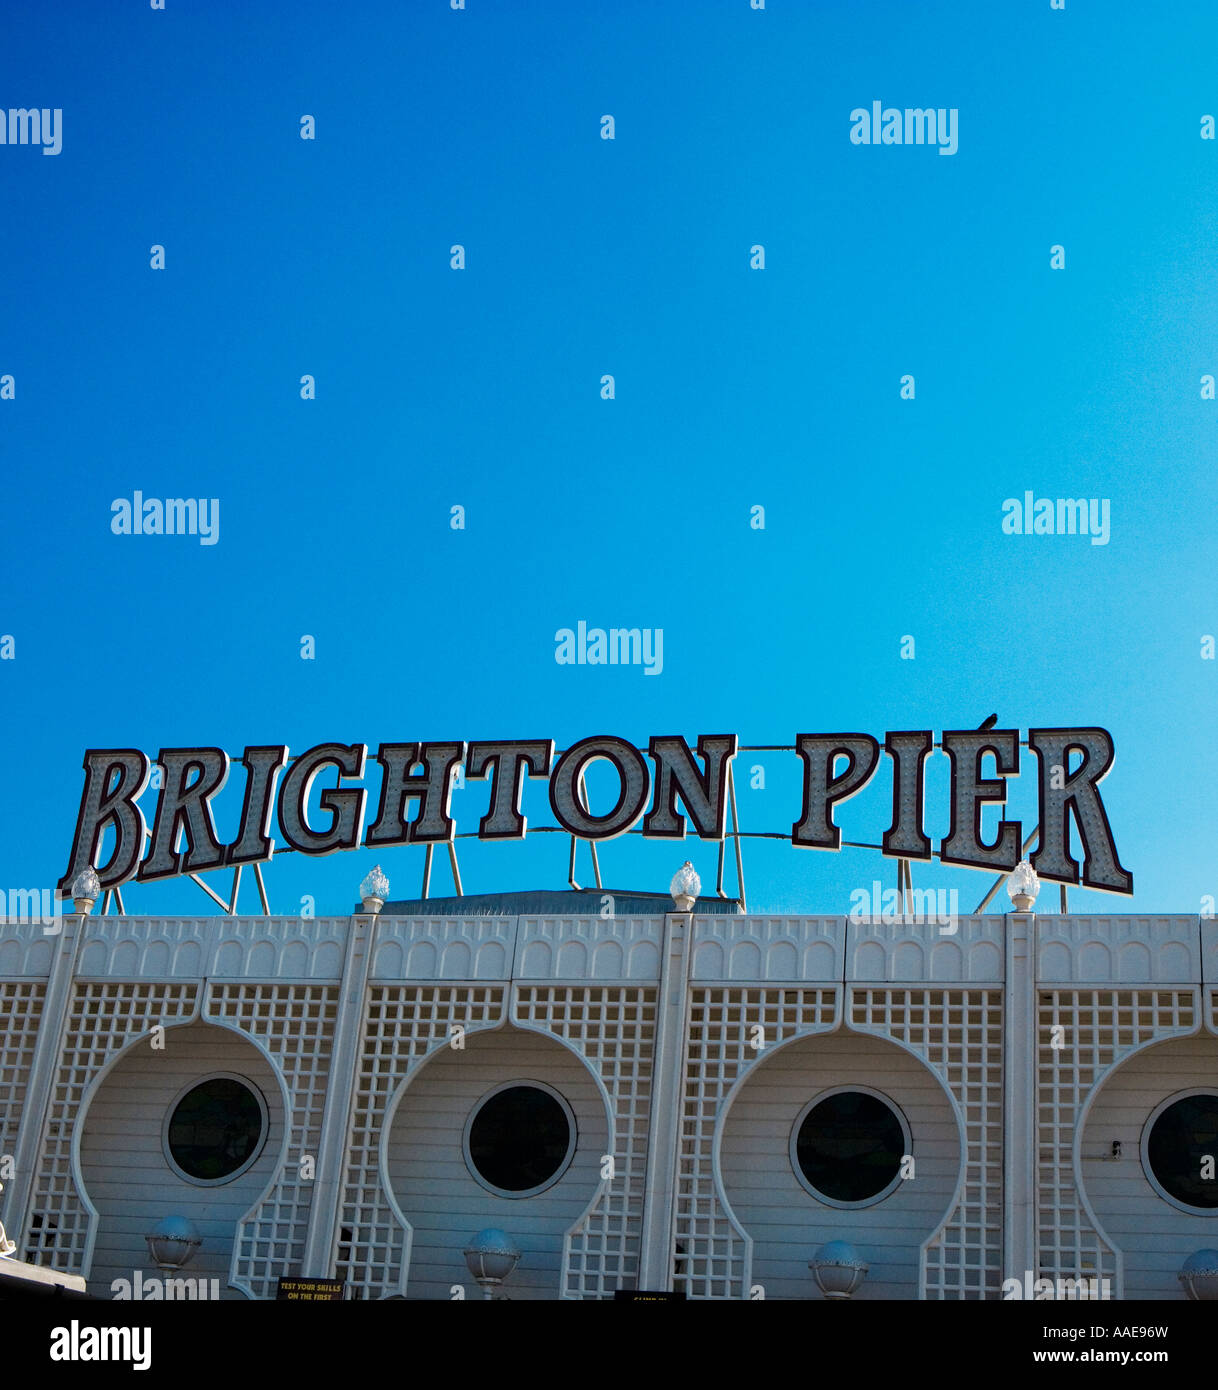 La jetée de Brighton, Brighton, Angleterre Photo Stock